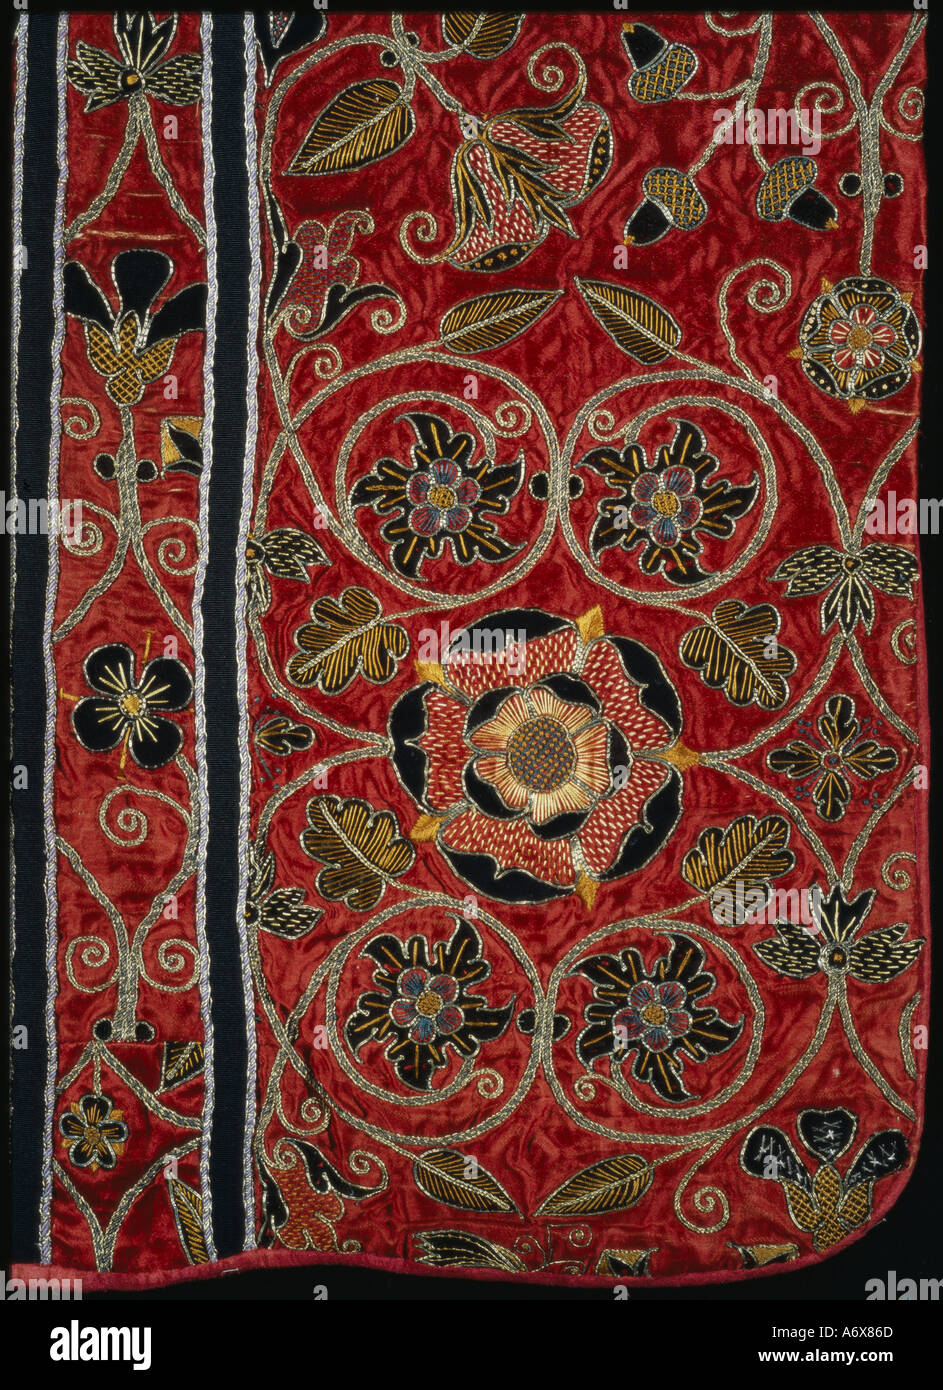 Tudor roses and flowers embroidered on a Chasuble. England, mid 16th century. - Stock Image